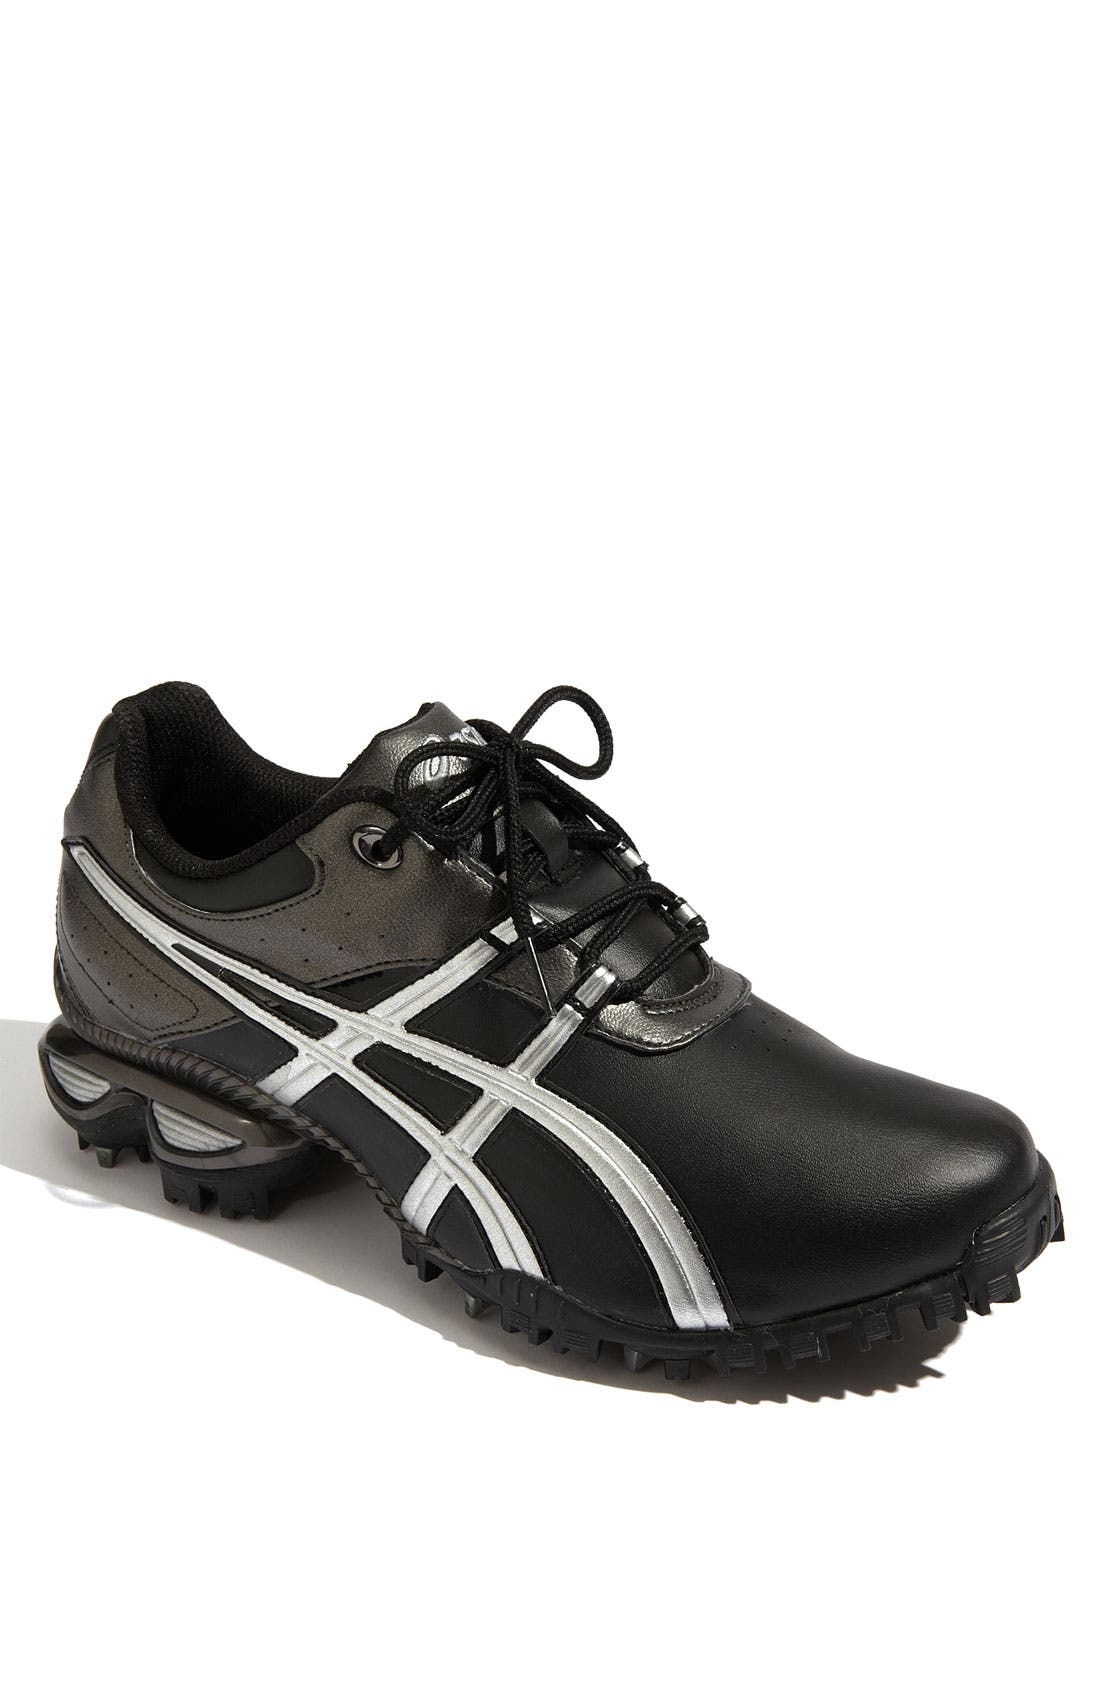 Main Image - ASICS® 'GEL-Linksmaster™' Golf Shoe (Men)